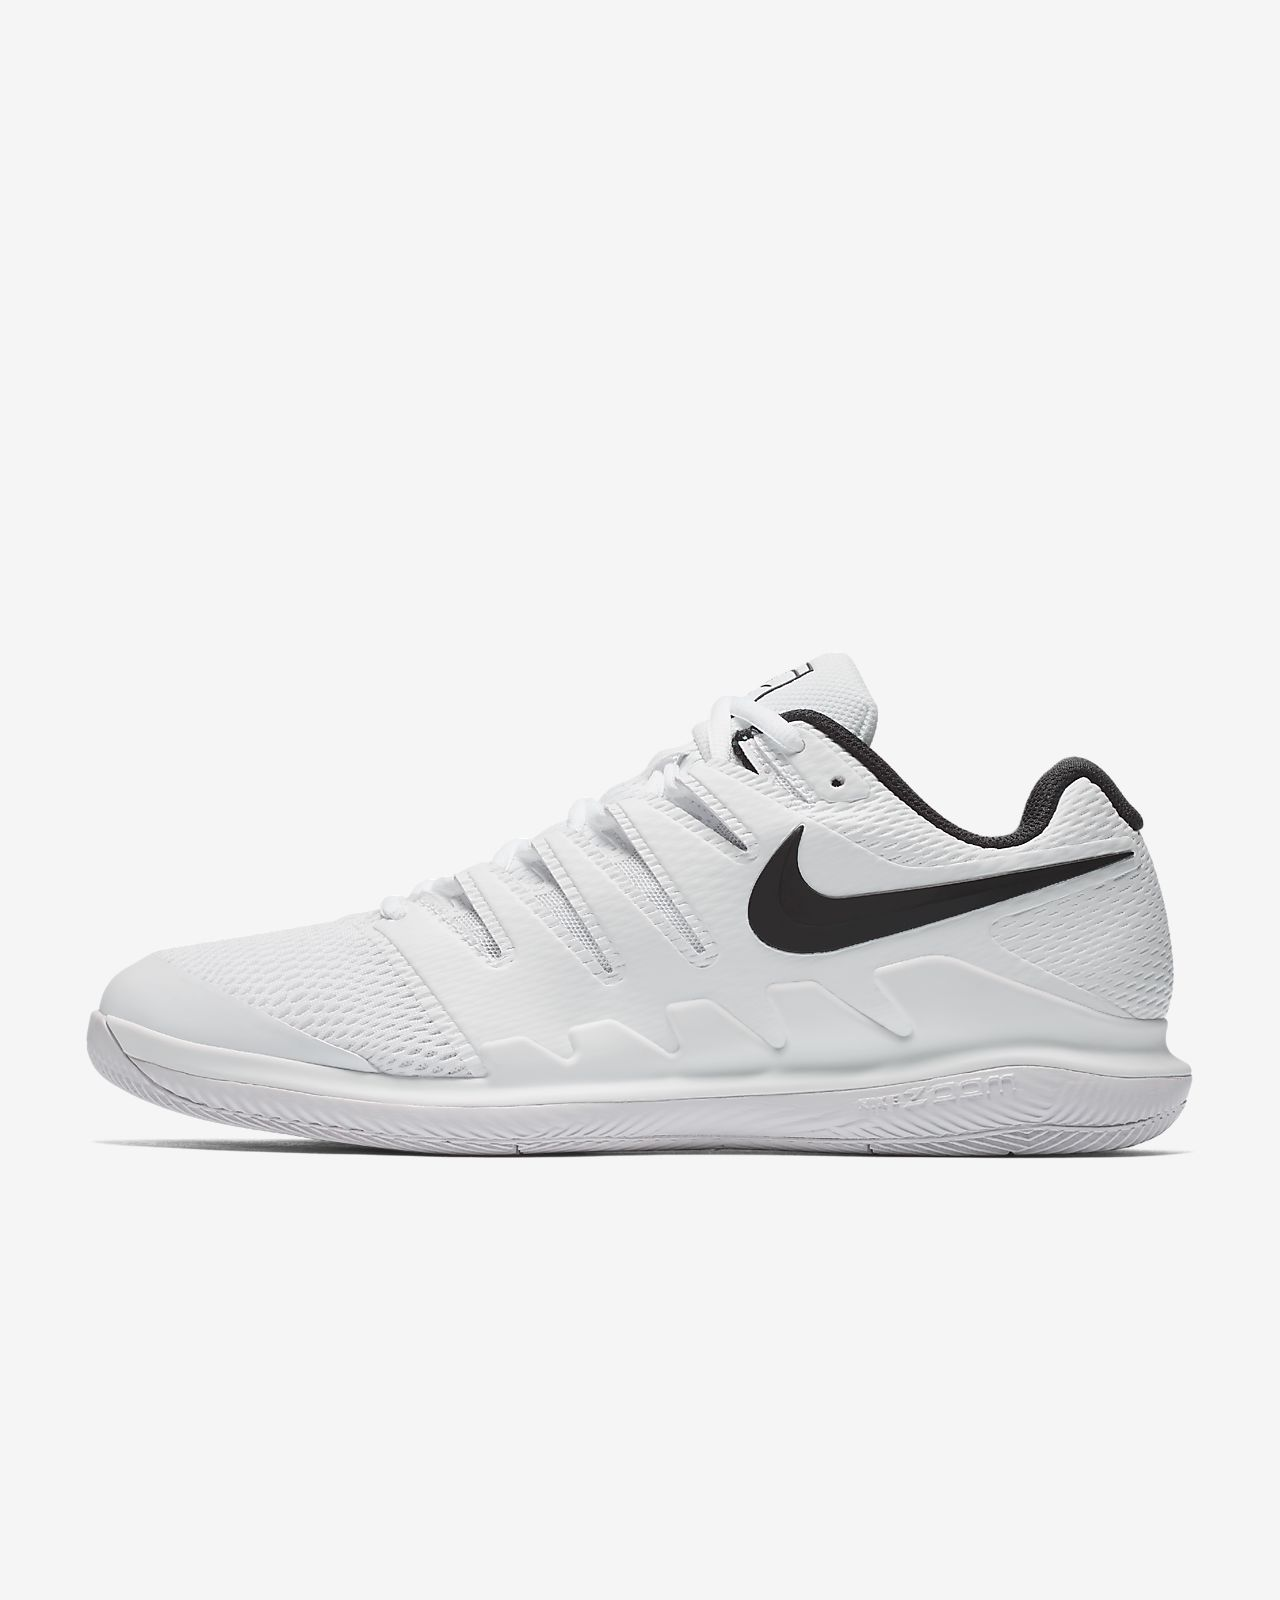 8102d75ef125 Nike Air Zoom Vapor X HC Men s Tennis Shoe. Nike.com CA